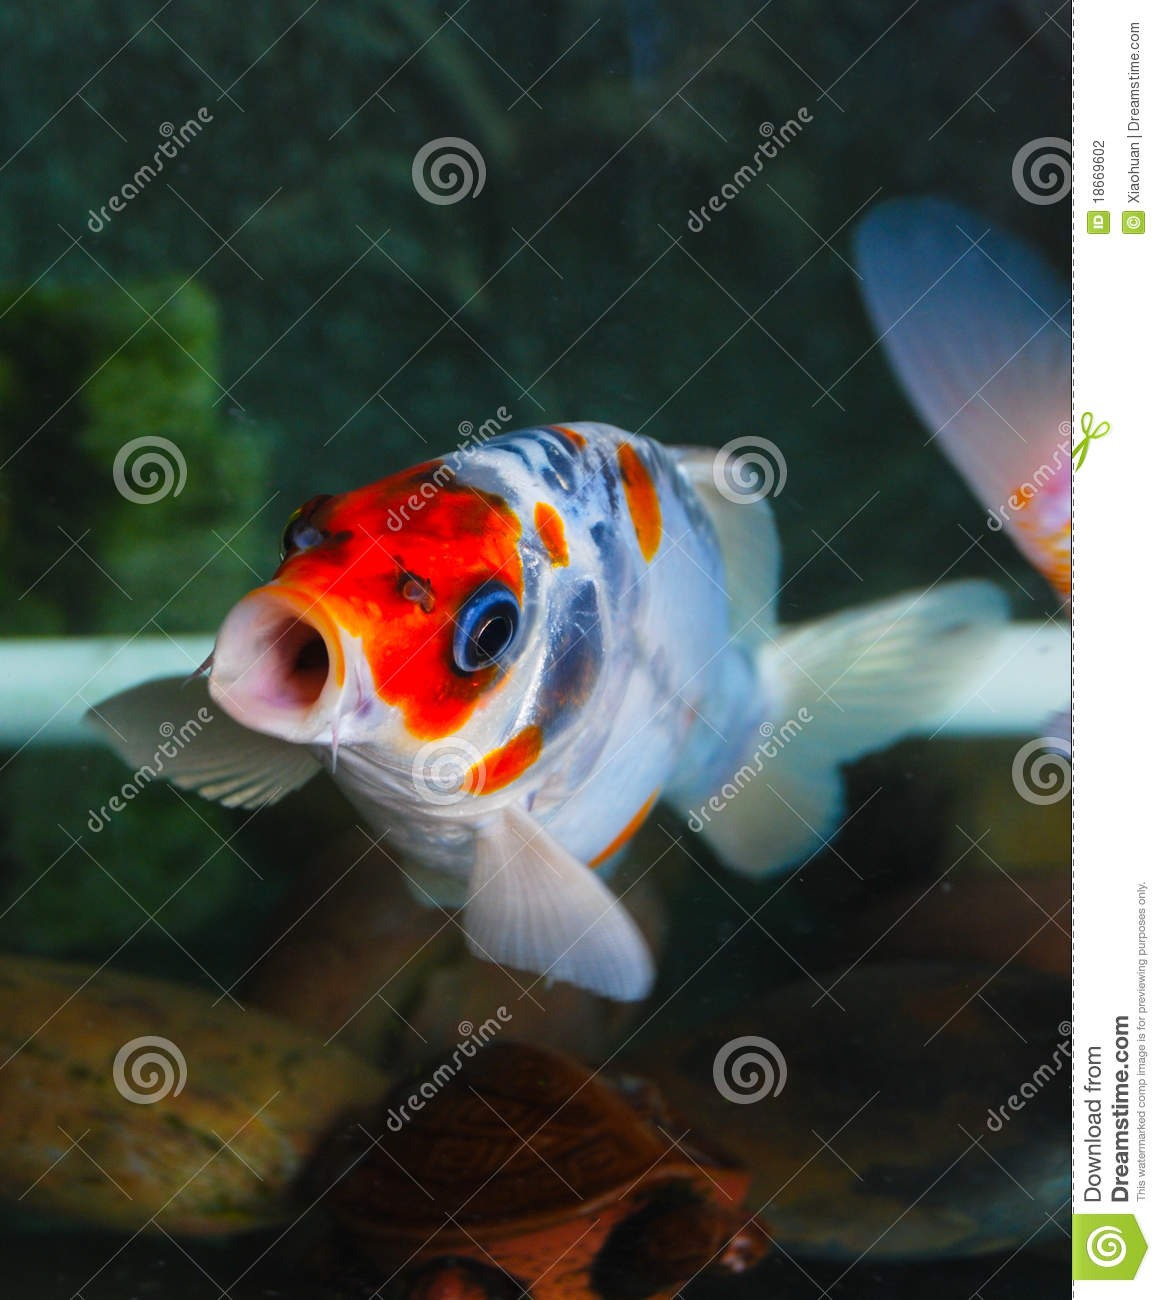 Carp stock photography image 18669602 for Carp in a fish tank